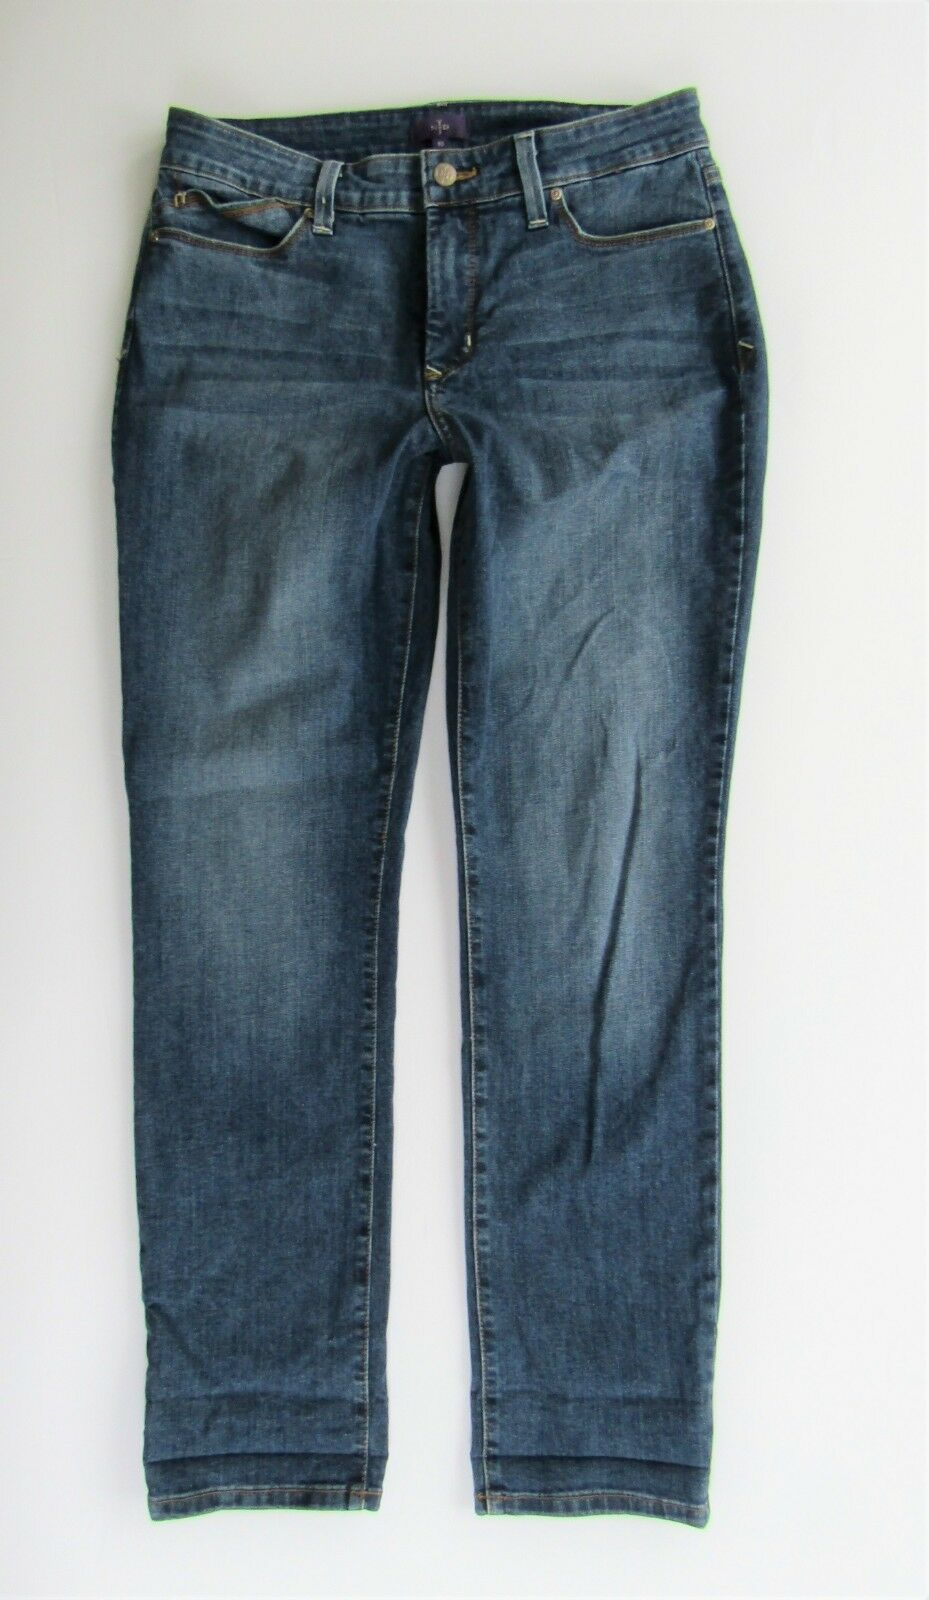 NYDJ Not Your Daughters Jeans Leann Skinny Boyfriend Legging Medium Wash Size 10